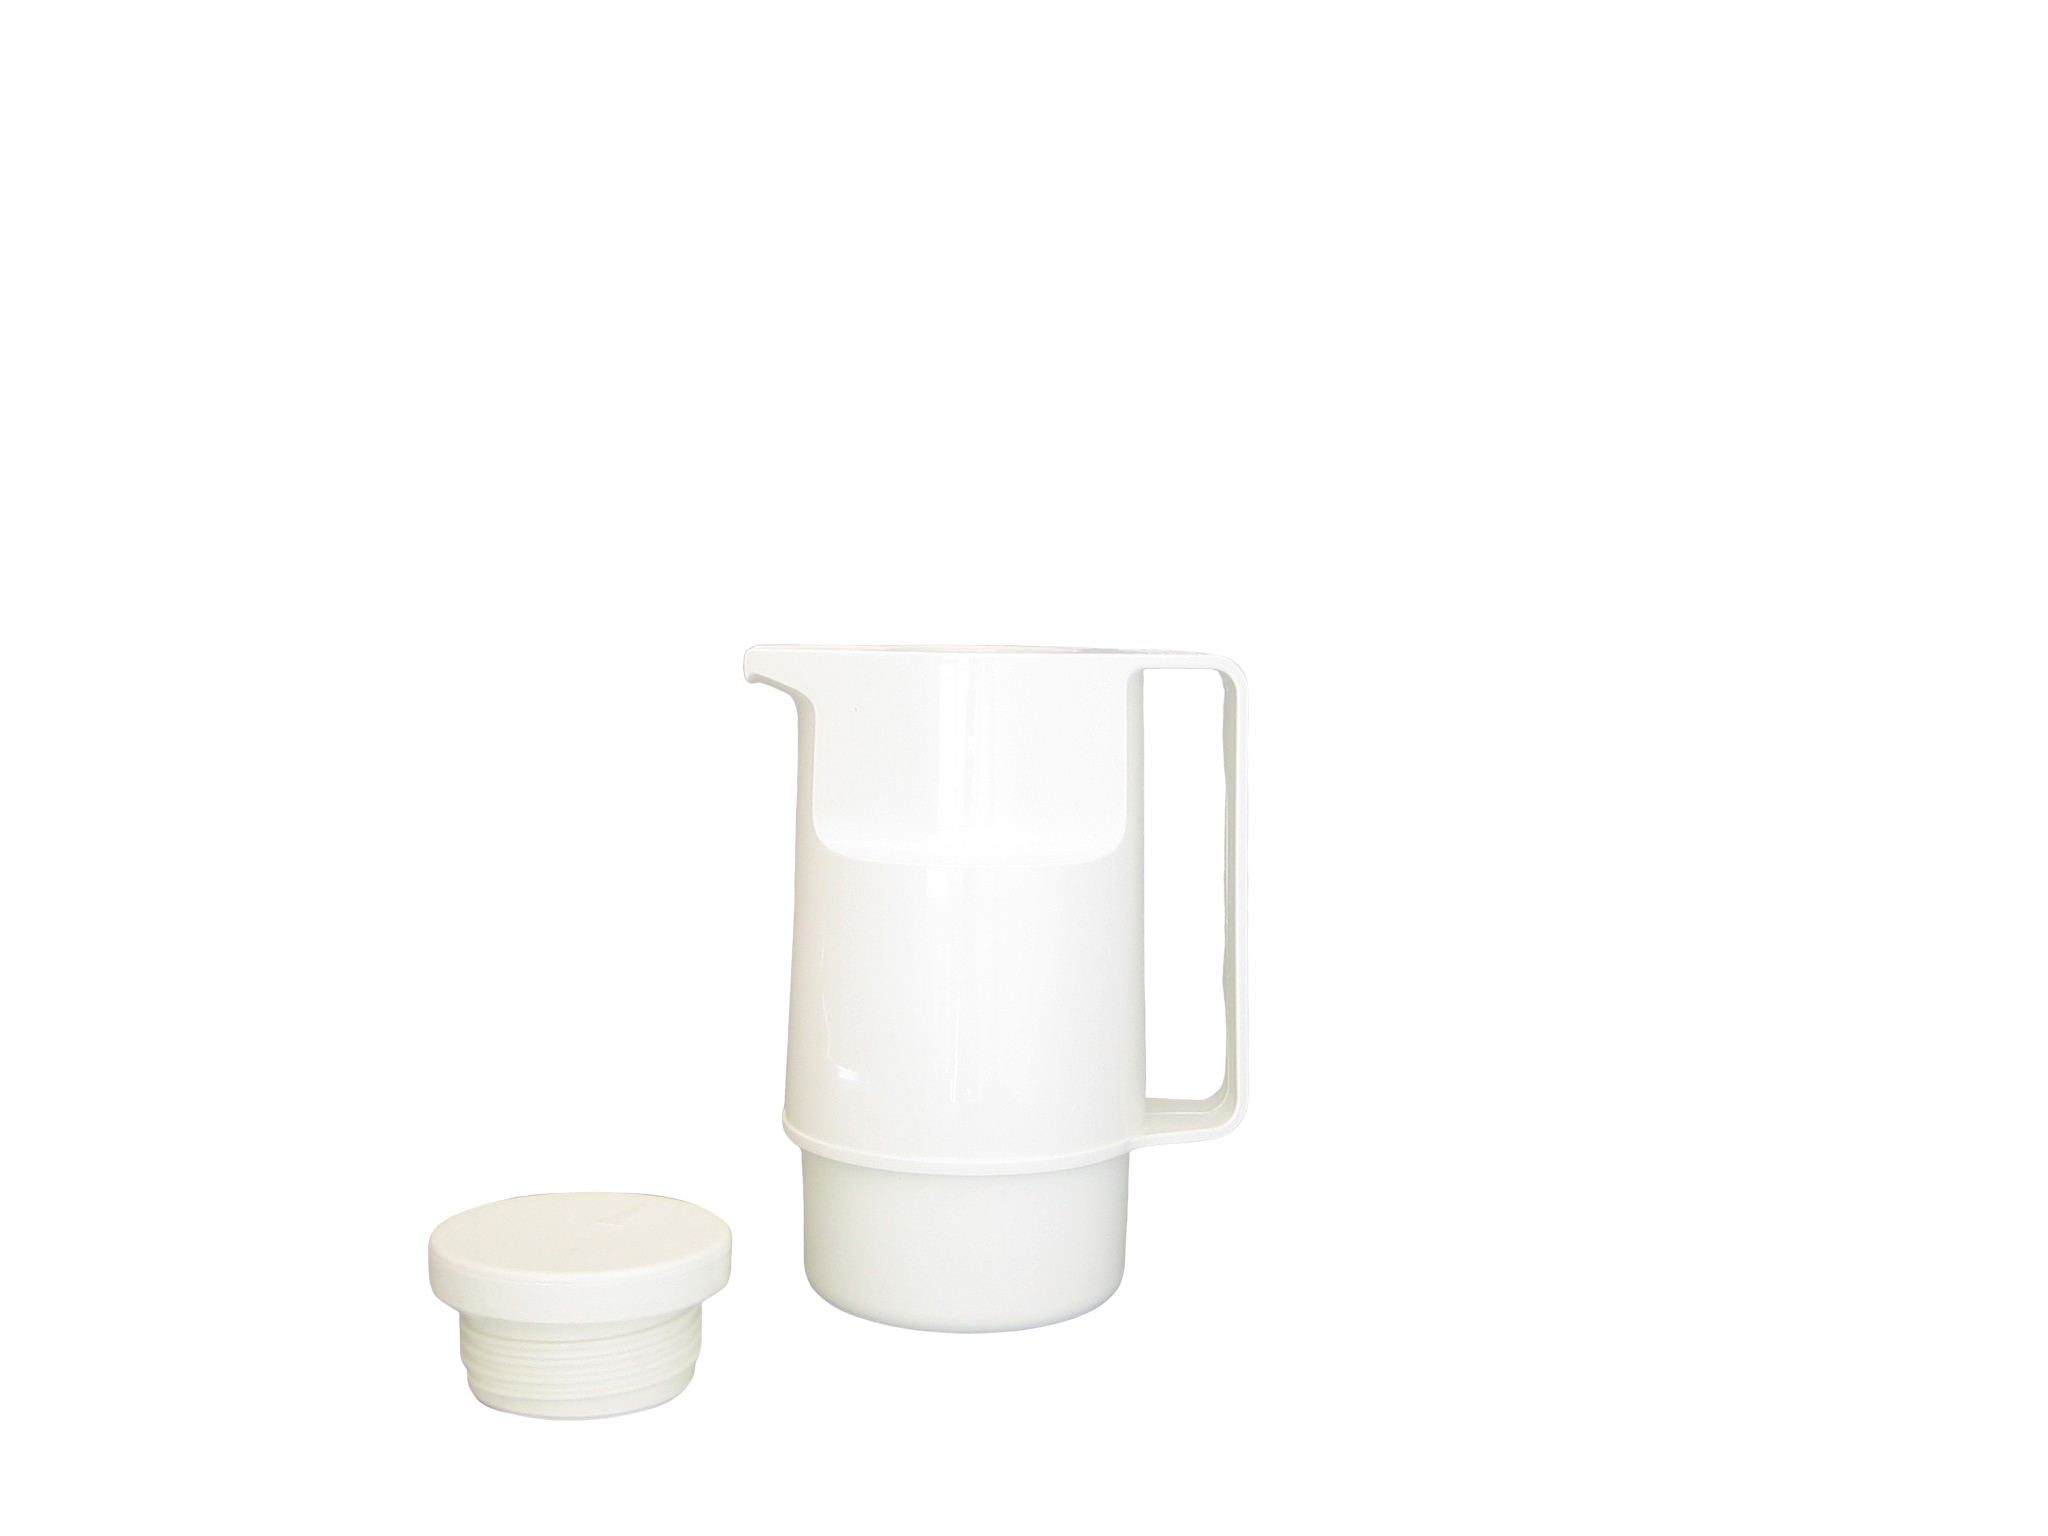 203-001 - Pichet isotherme ABS blanc 0.30 L - Isobel